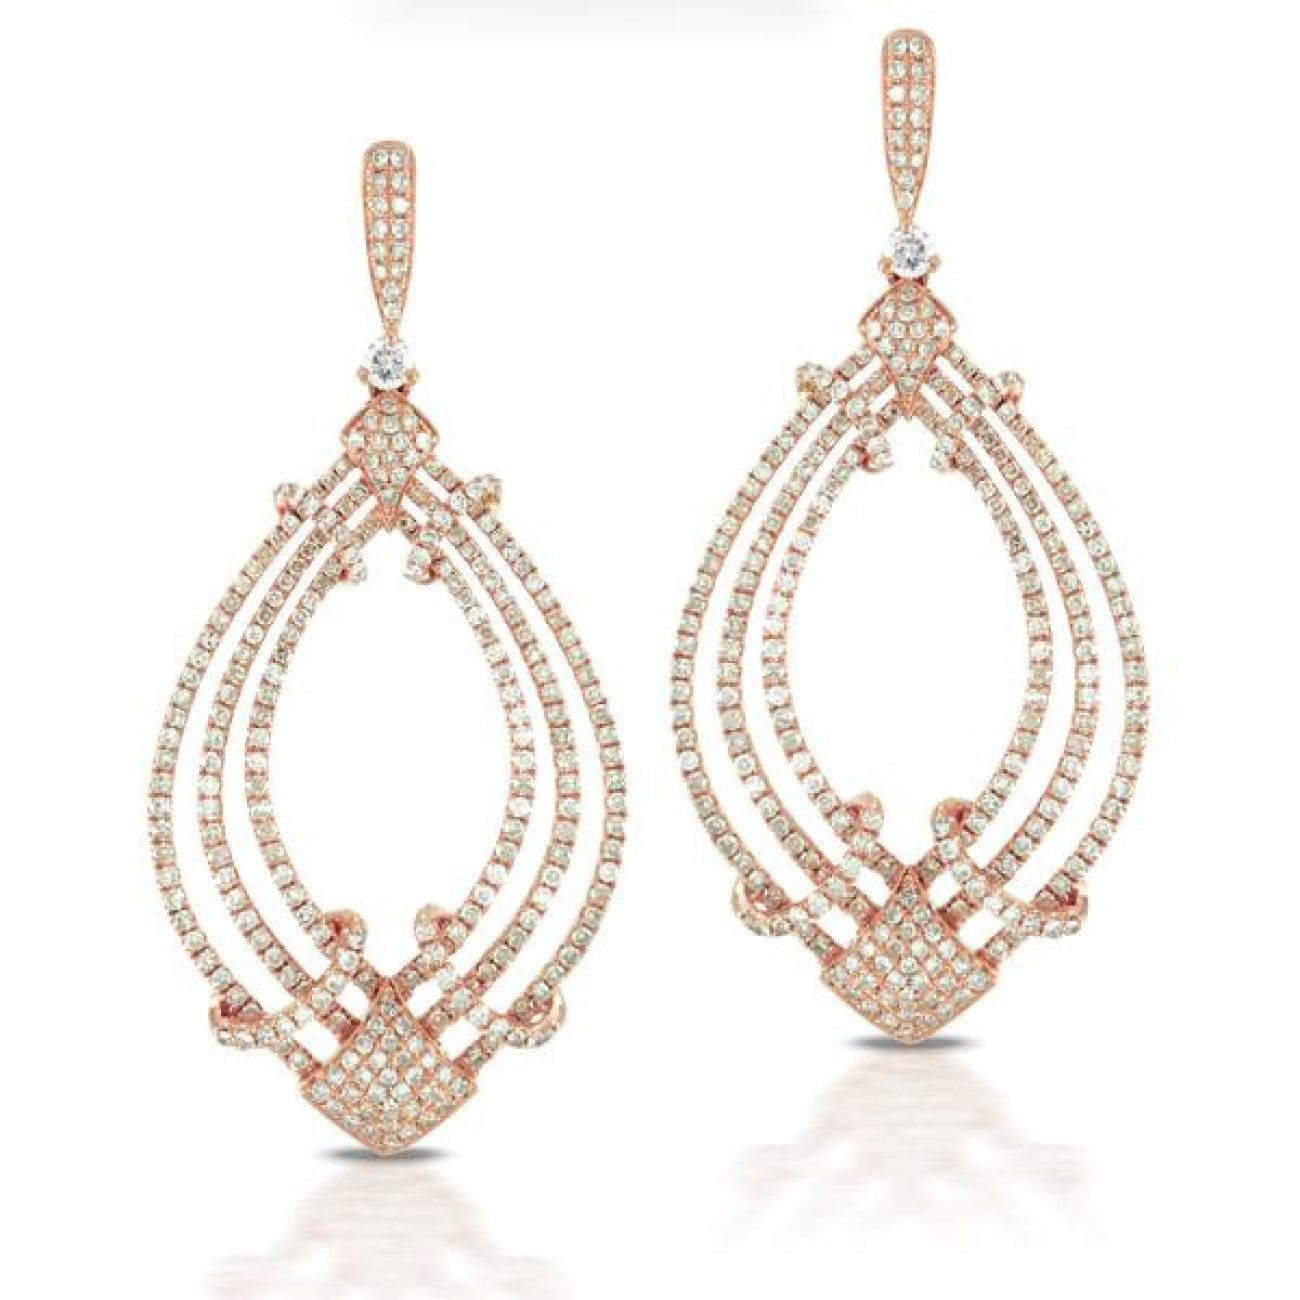 Doves Jewelry - Diamond Fashion Collection Earrings | Manfredi Jewels